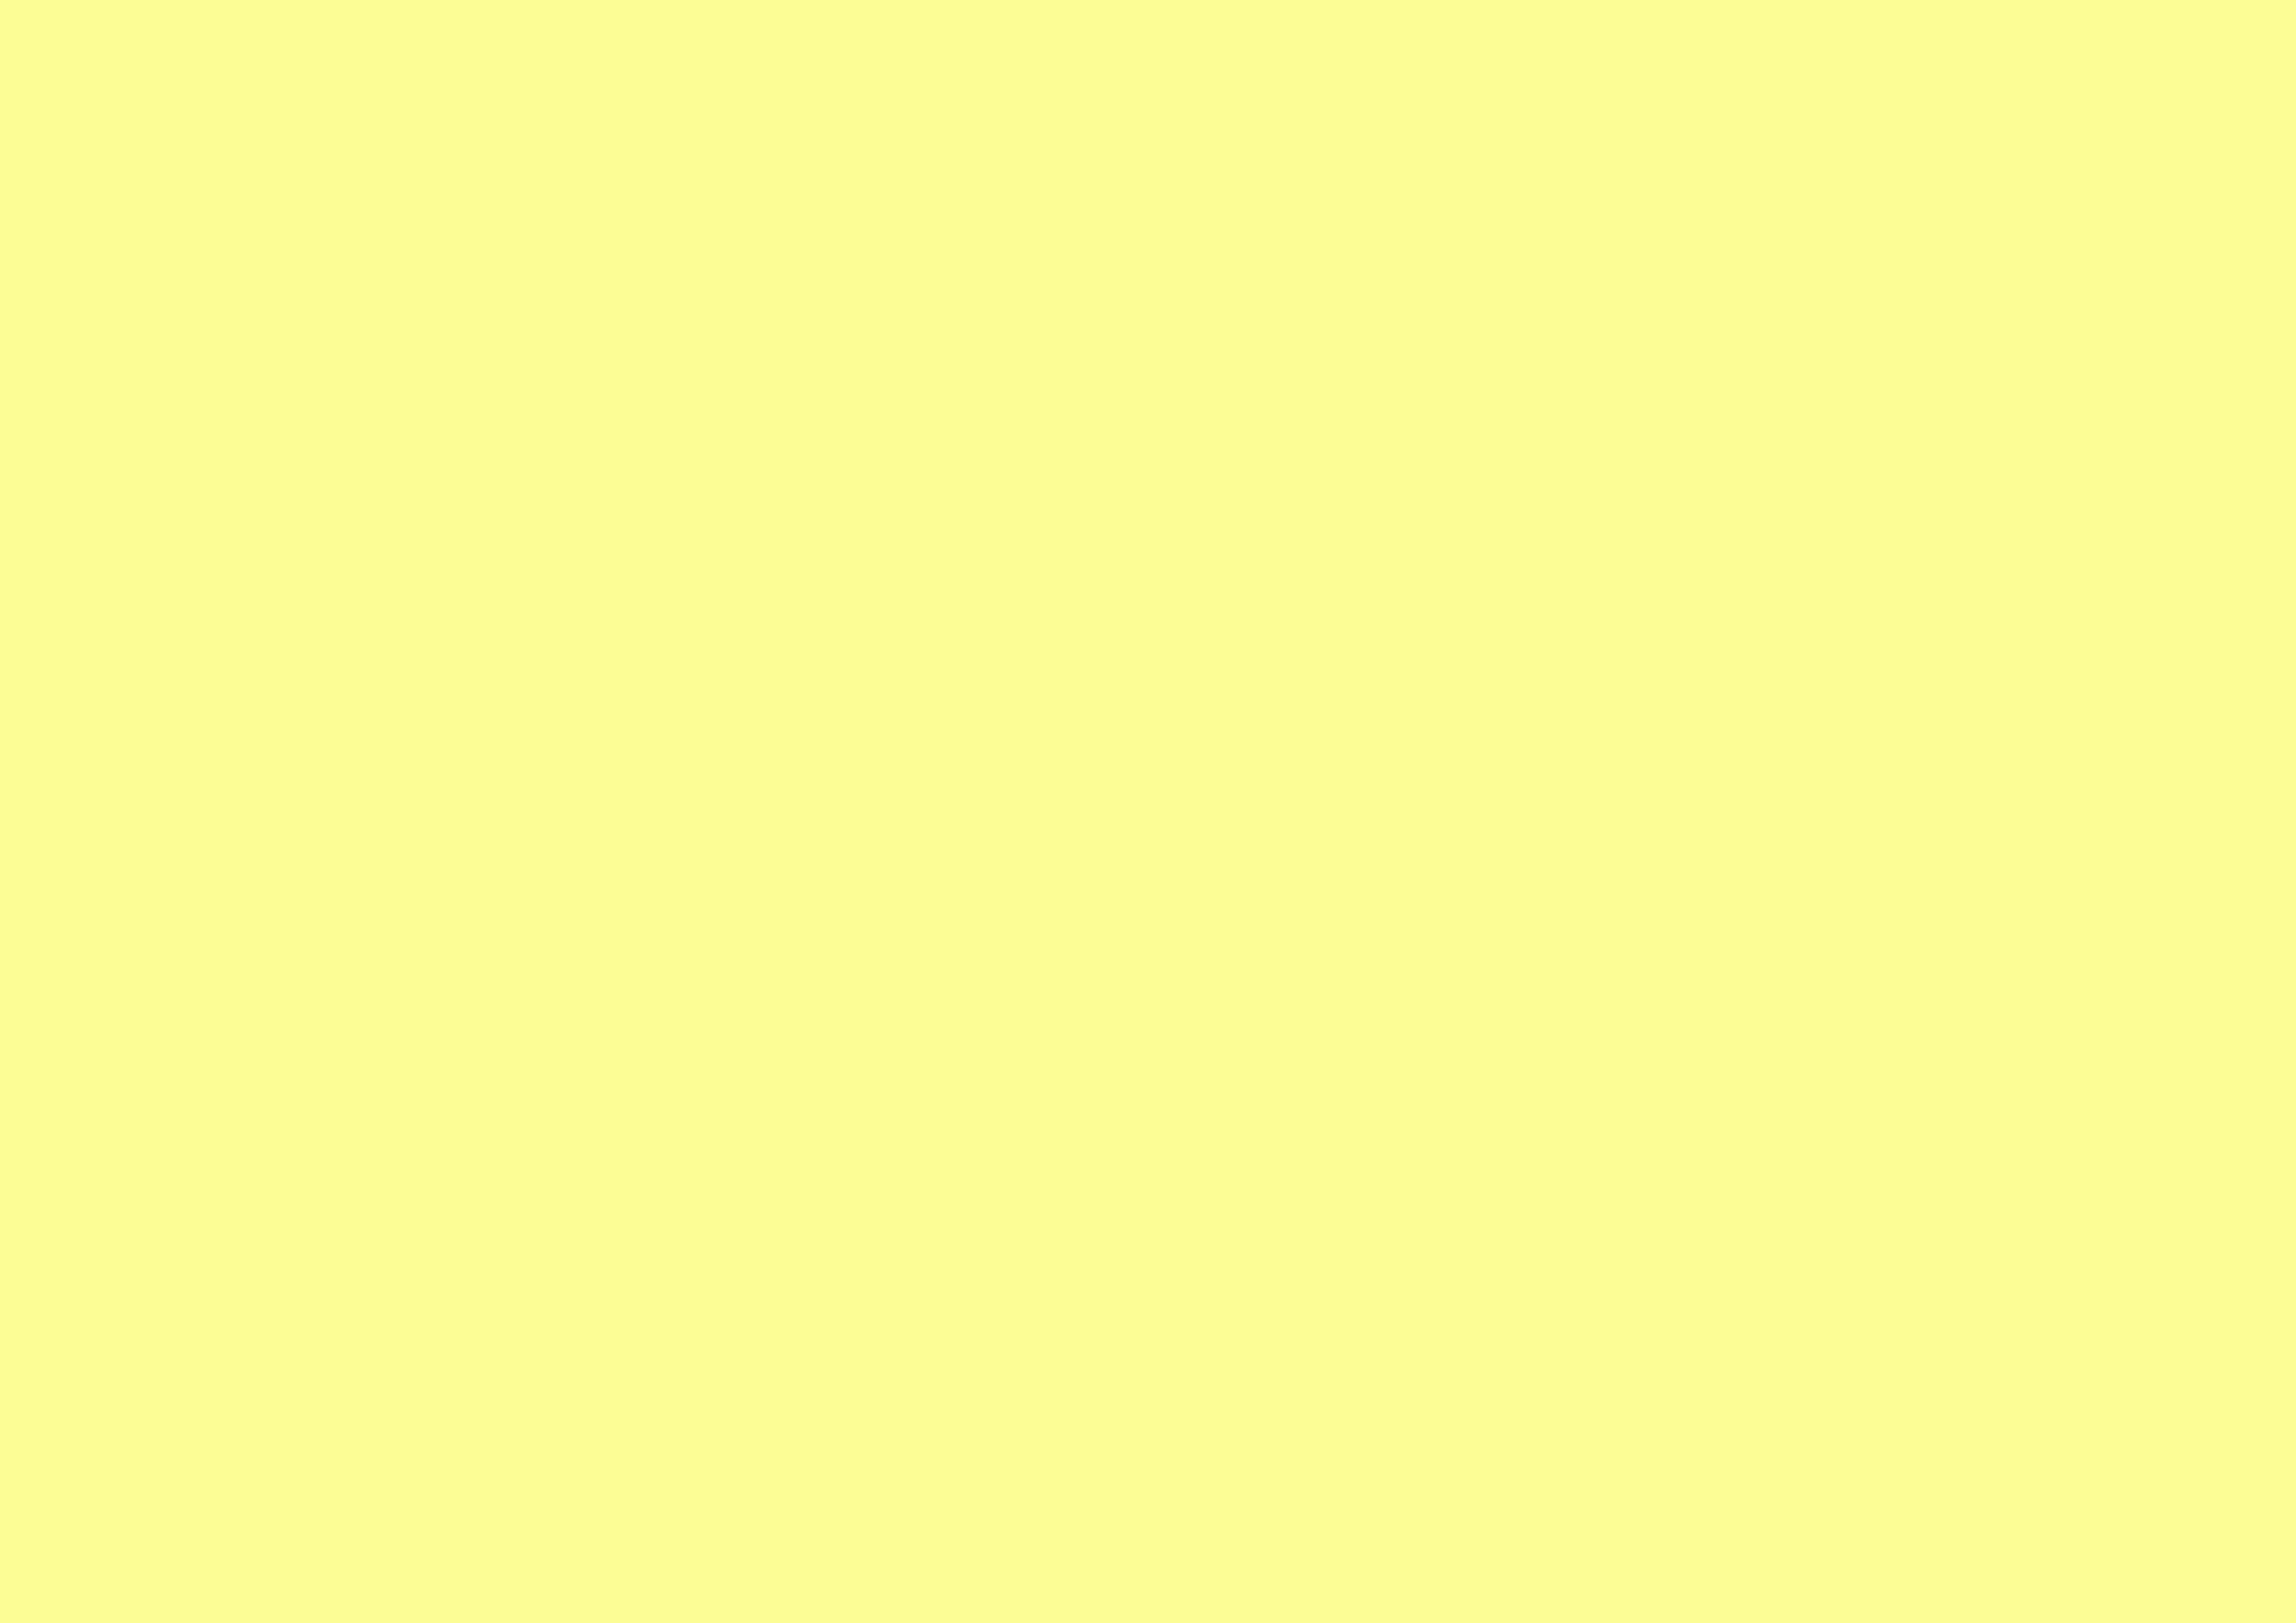 3508x2480 Pastel Yellow Solid Color Background